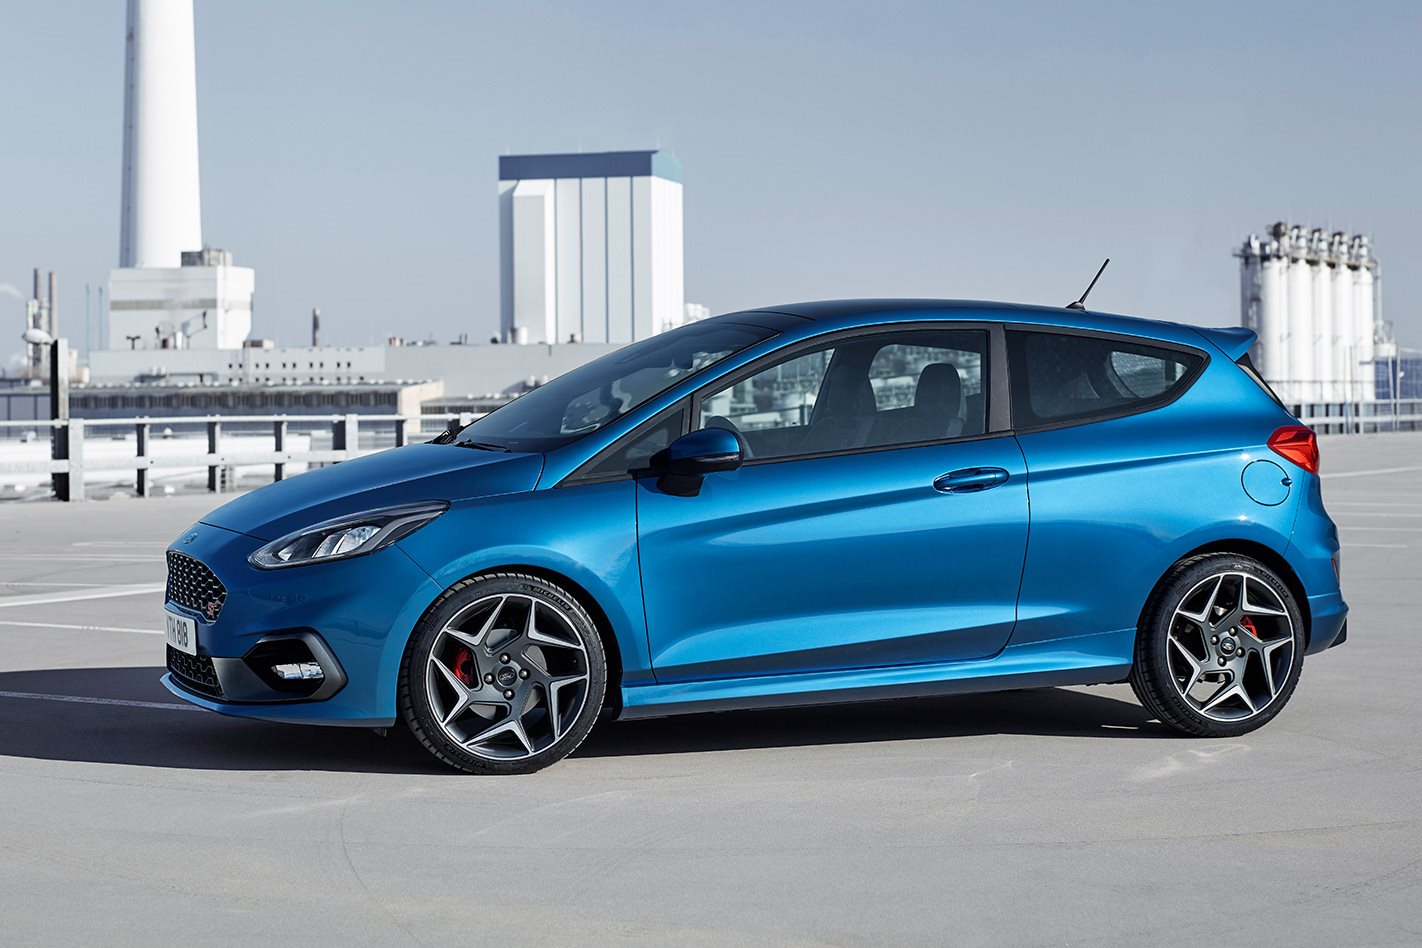 34 All New 2019 Fiesta St Interior